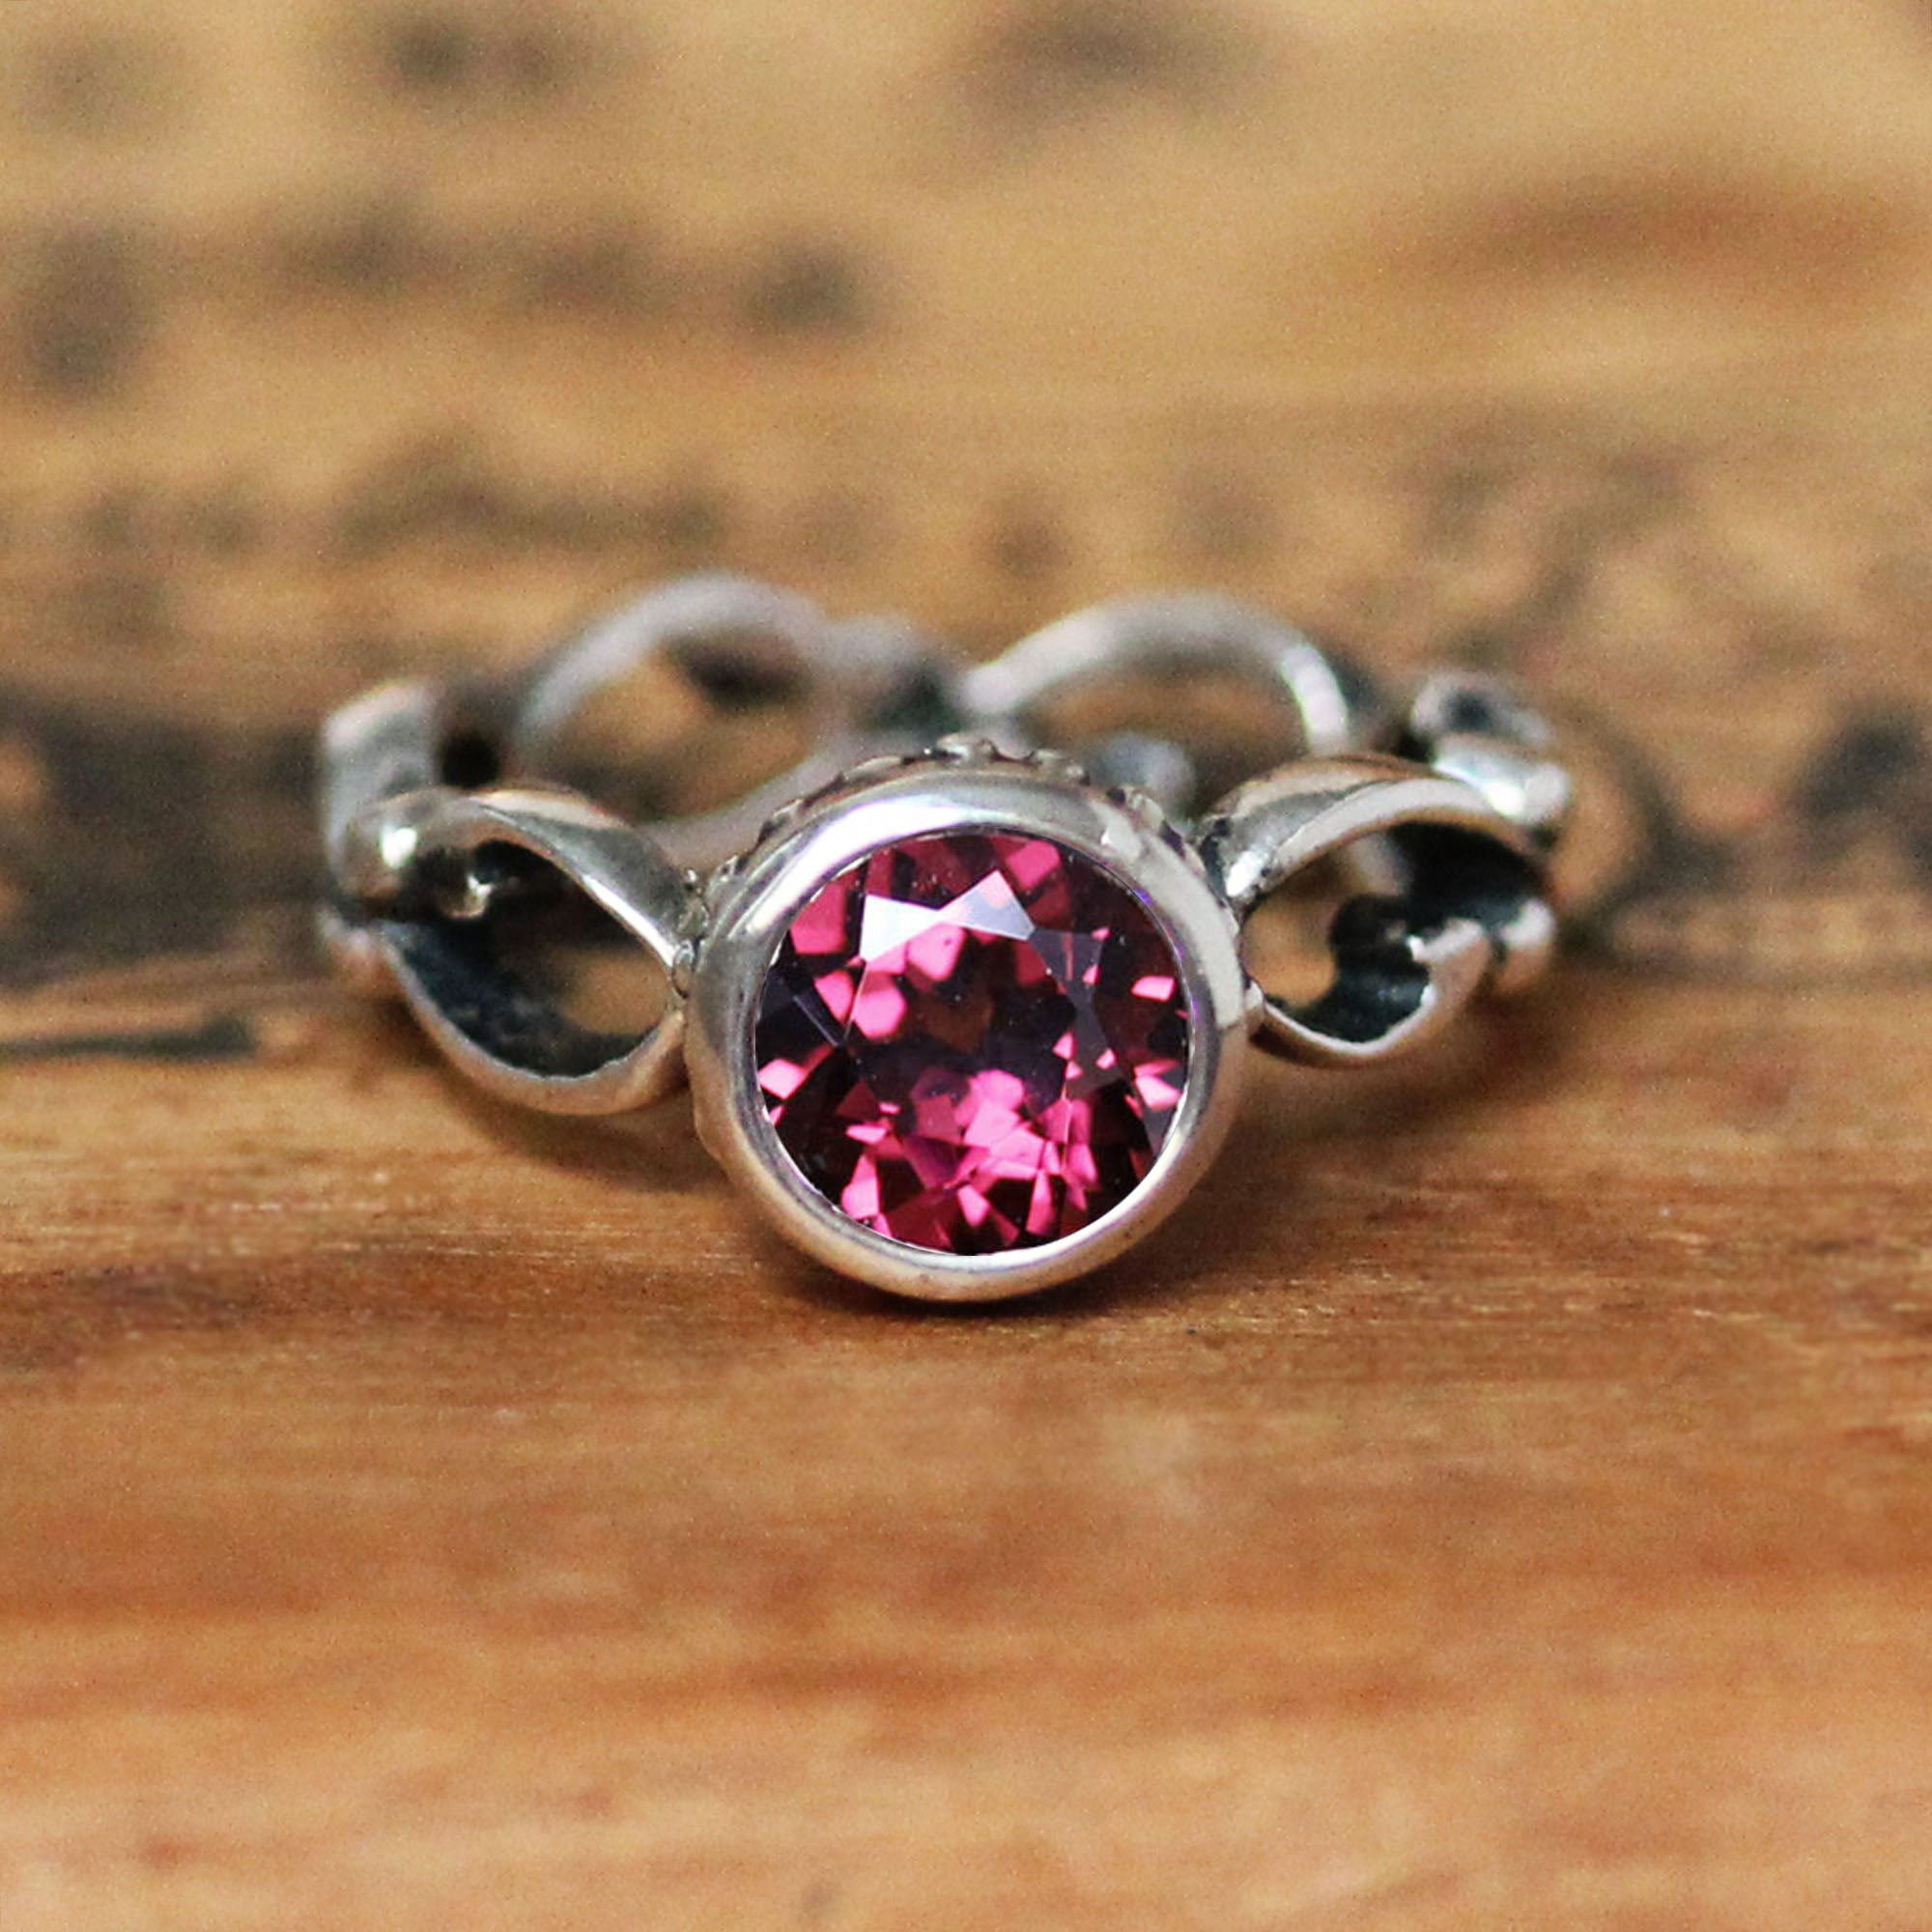 Details about  /81stgeneration Sterling Silver Garnet Round Oxidized Tribal Disc Ring